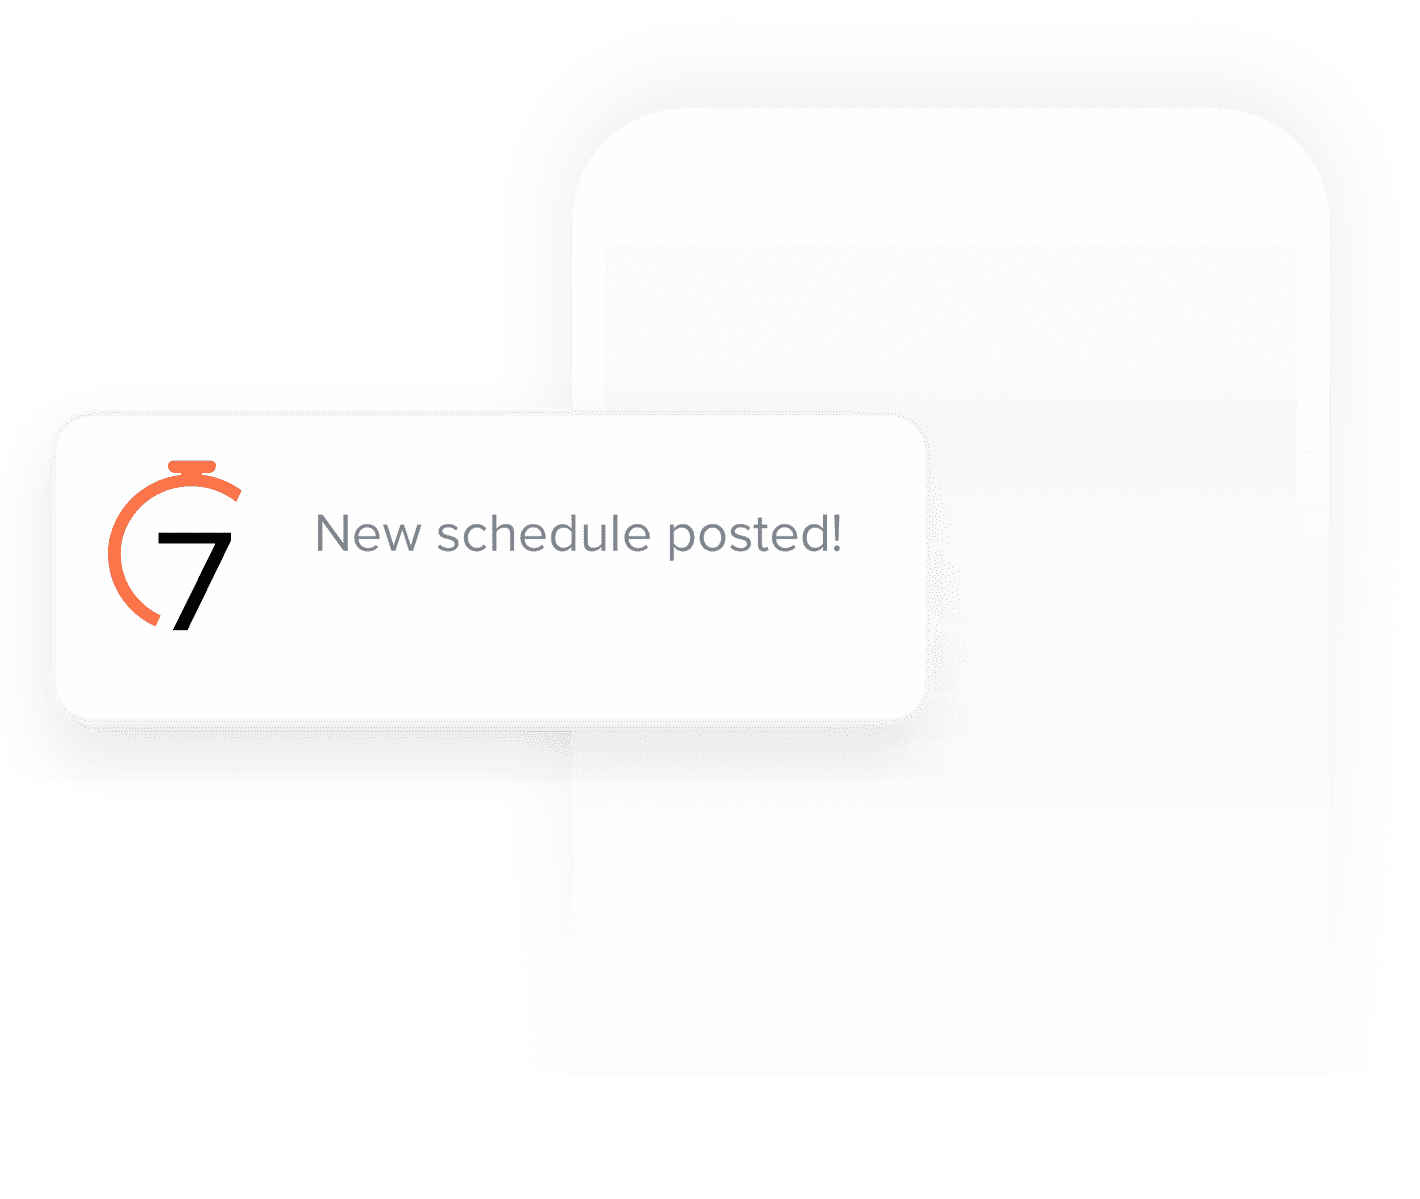 7shifts feature Electronic schedule publishing